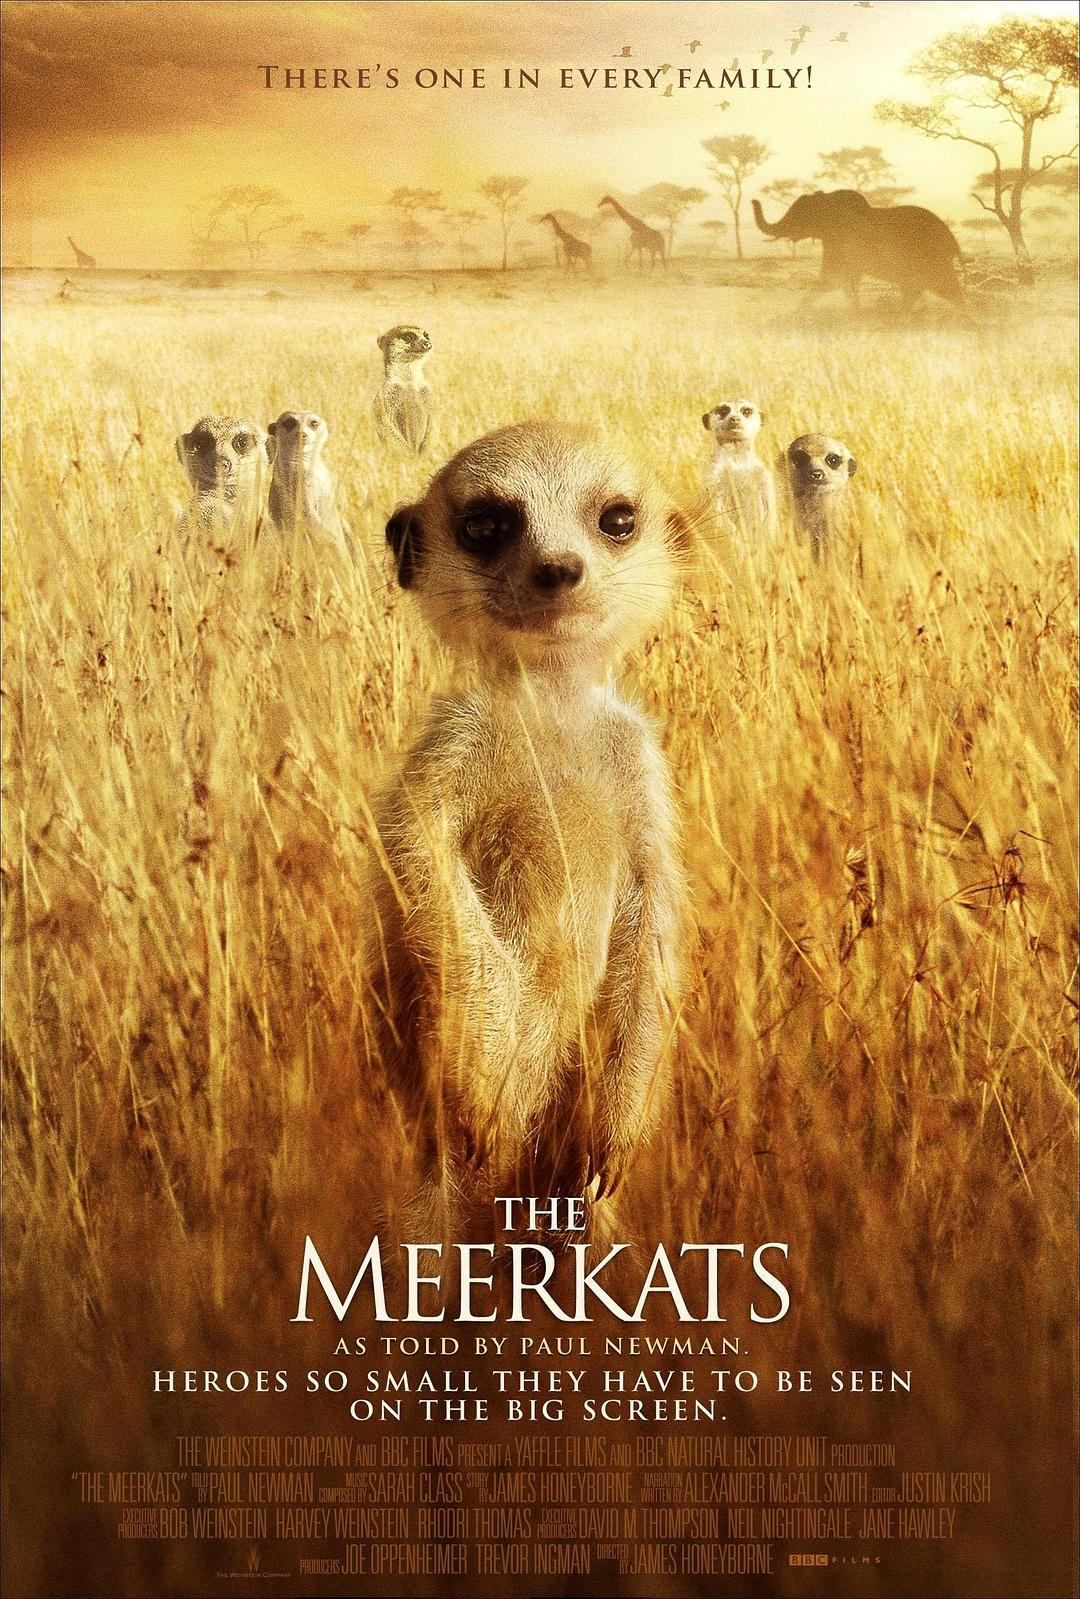 悠悠MP4_MP4电影下载_蒙哥/狐獴家庭 The.Meerkats.2008.1080p.BluRay.x264.DTS-FGT 7.56GB